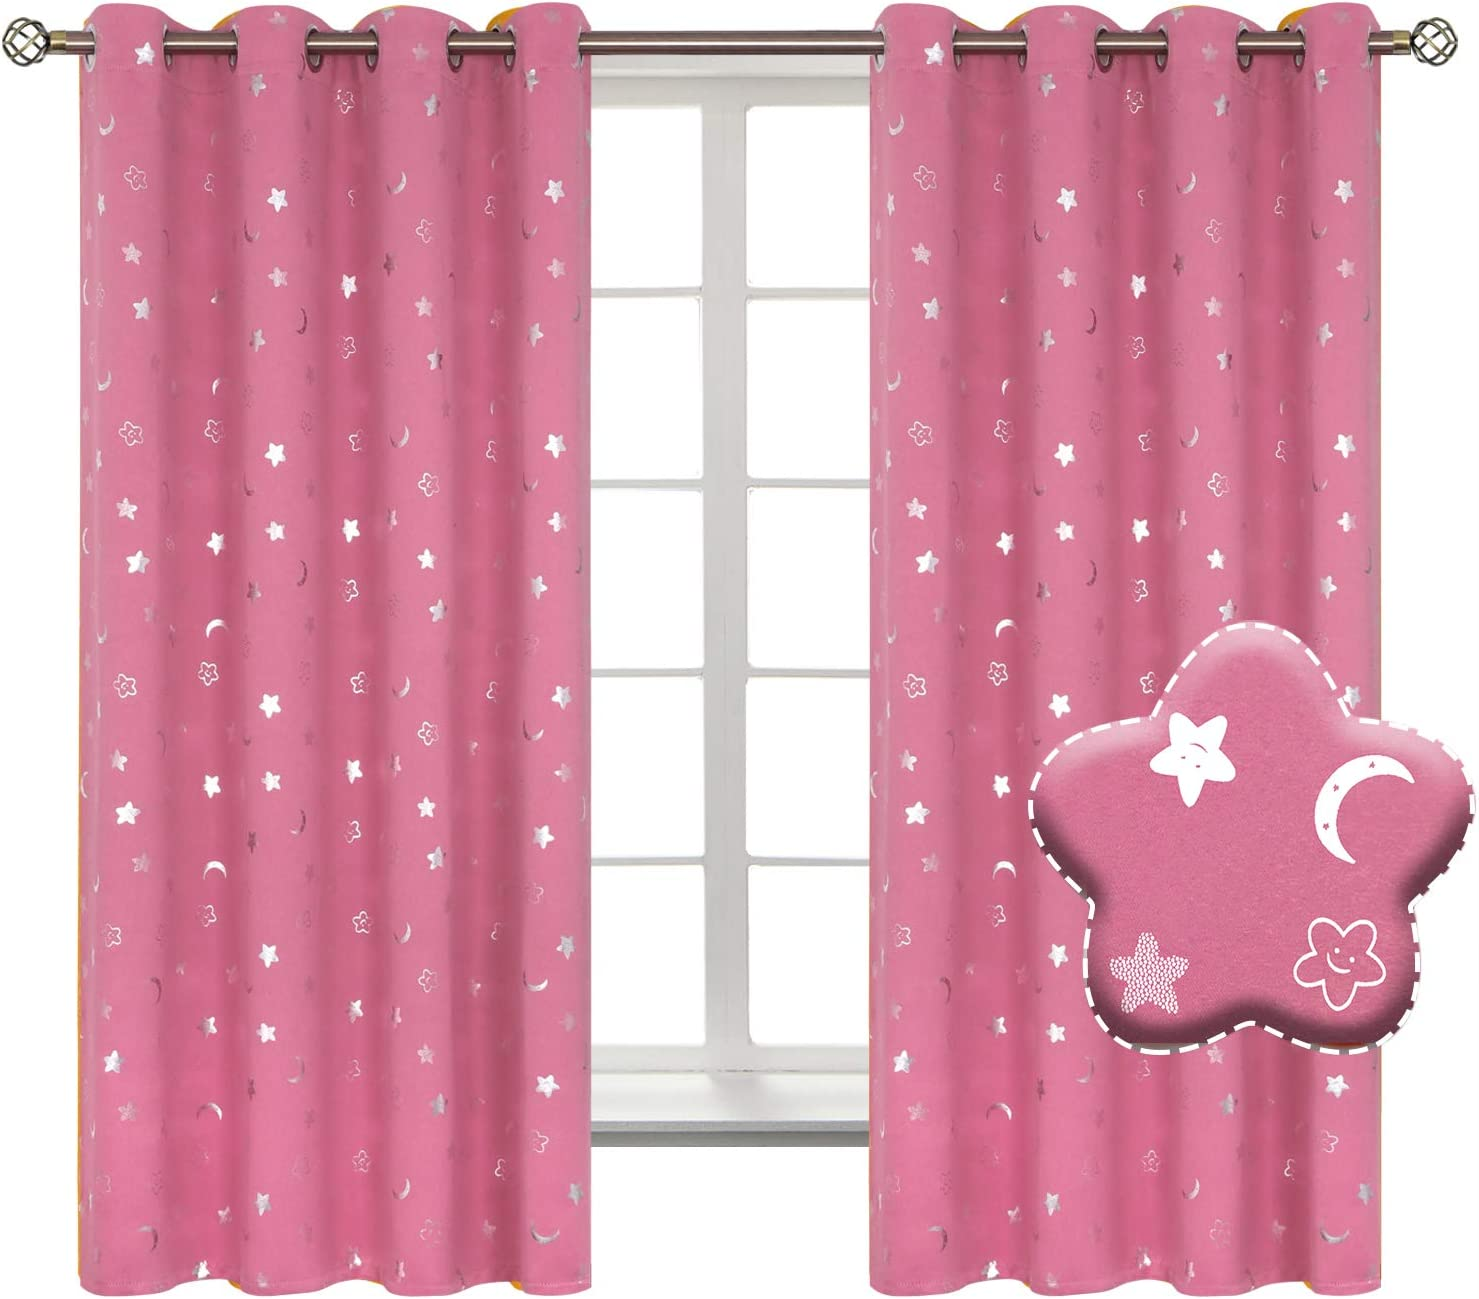 Grommet Thermal Insulated Room Darkening Printed Kids Curtains 2 Panels of 42 x 84 Inch Navy BGment Moon and Stars Blackout Curtains for Boys Bedroom